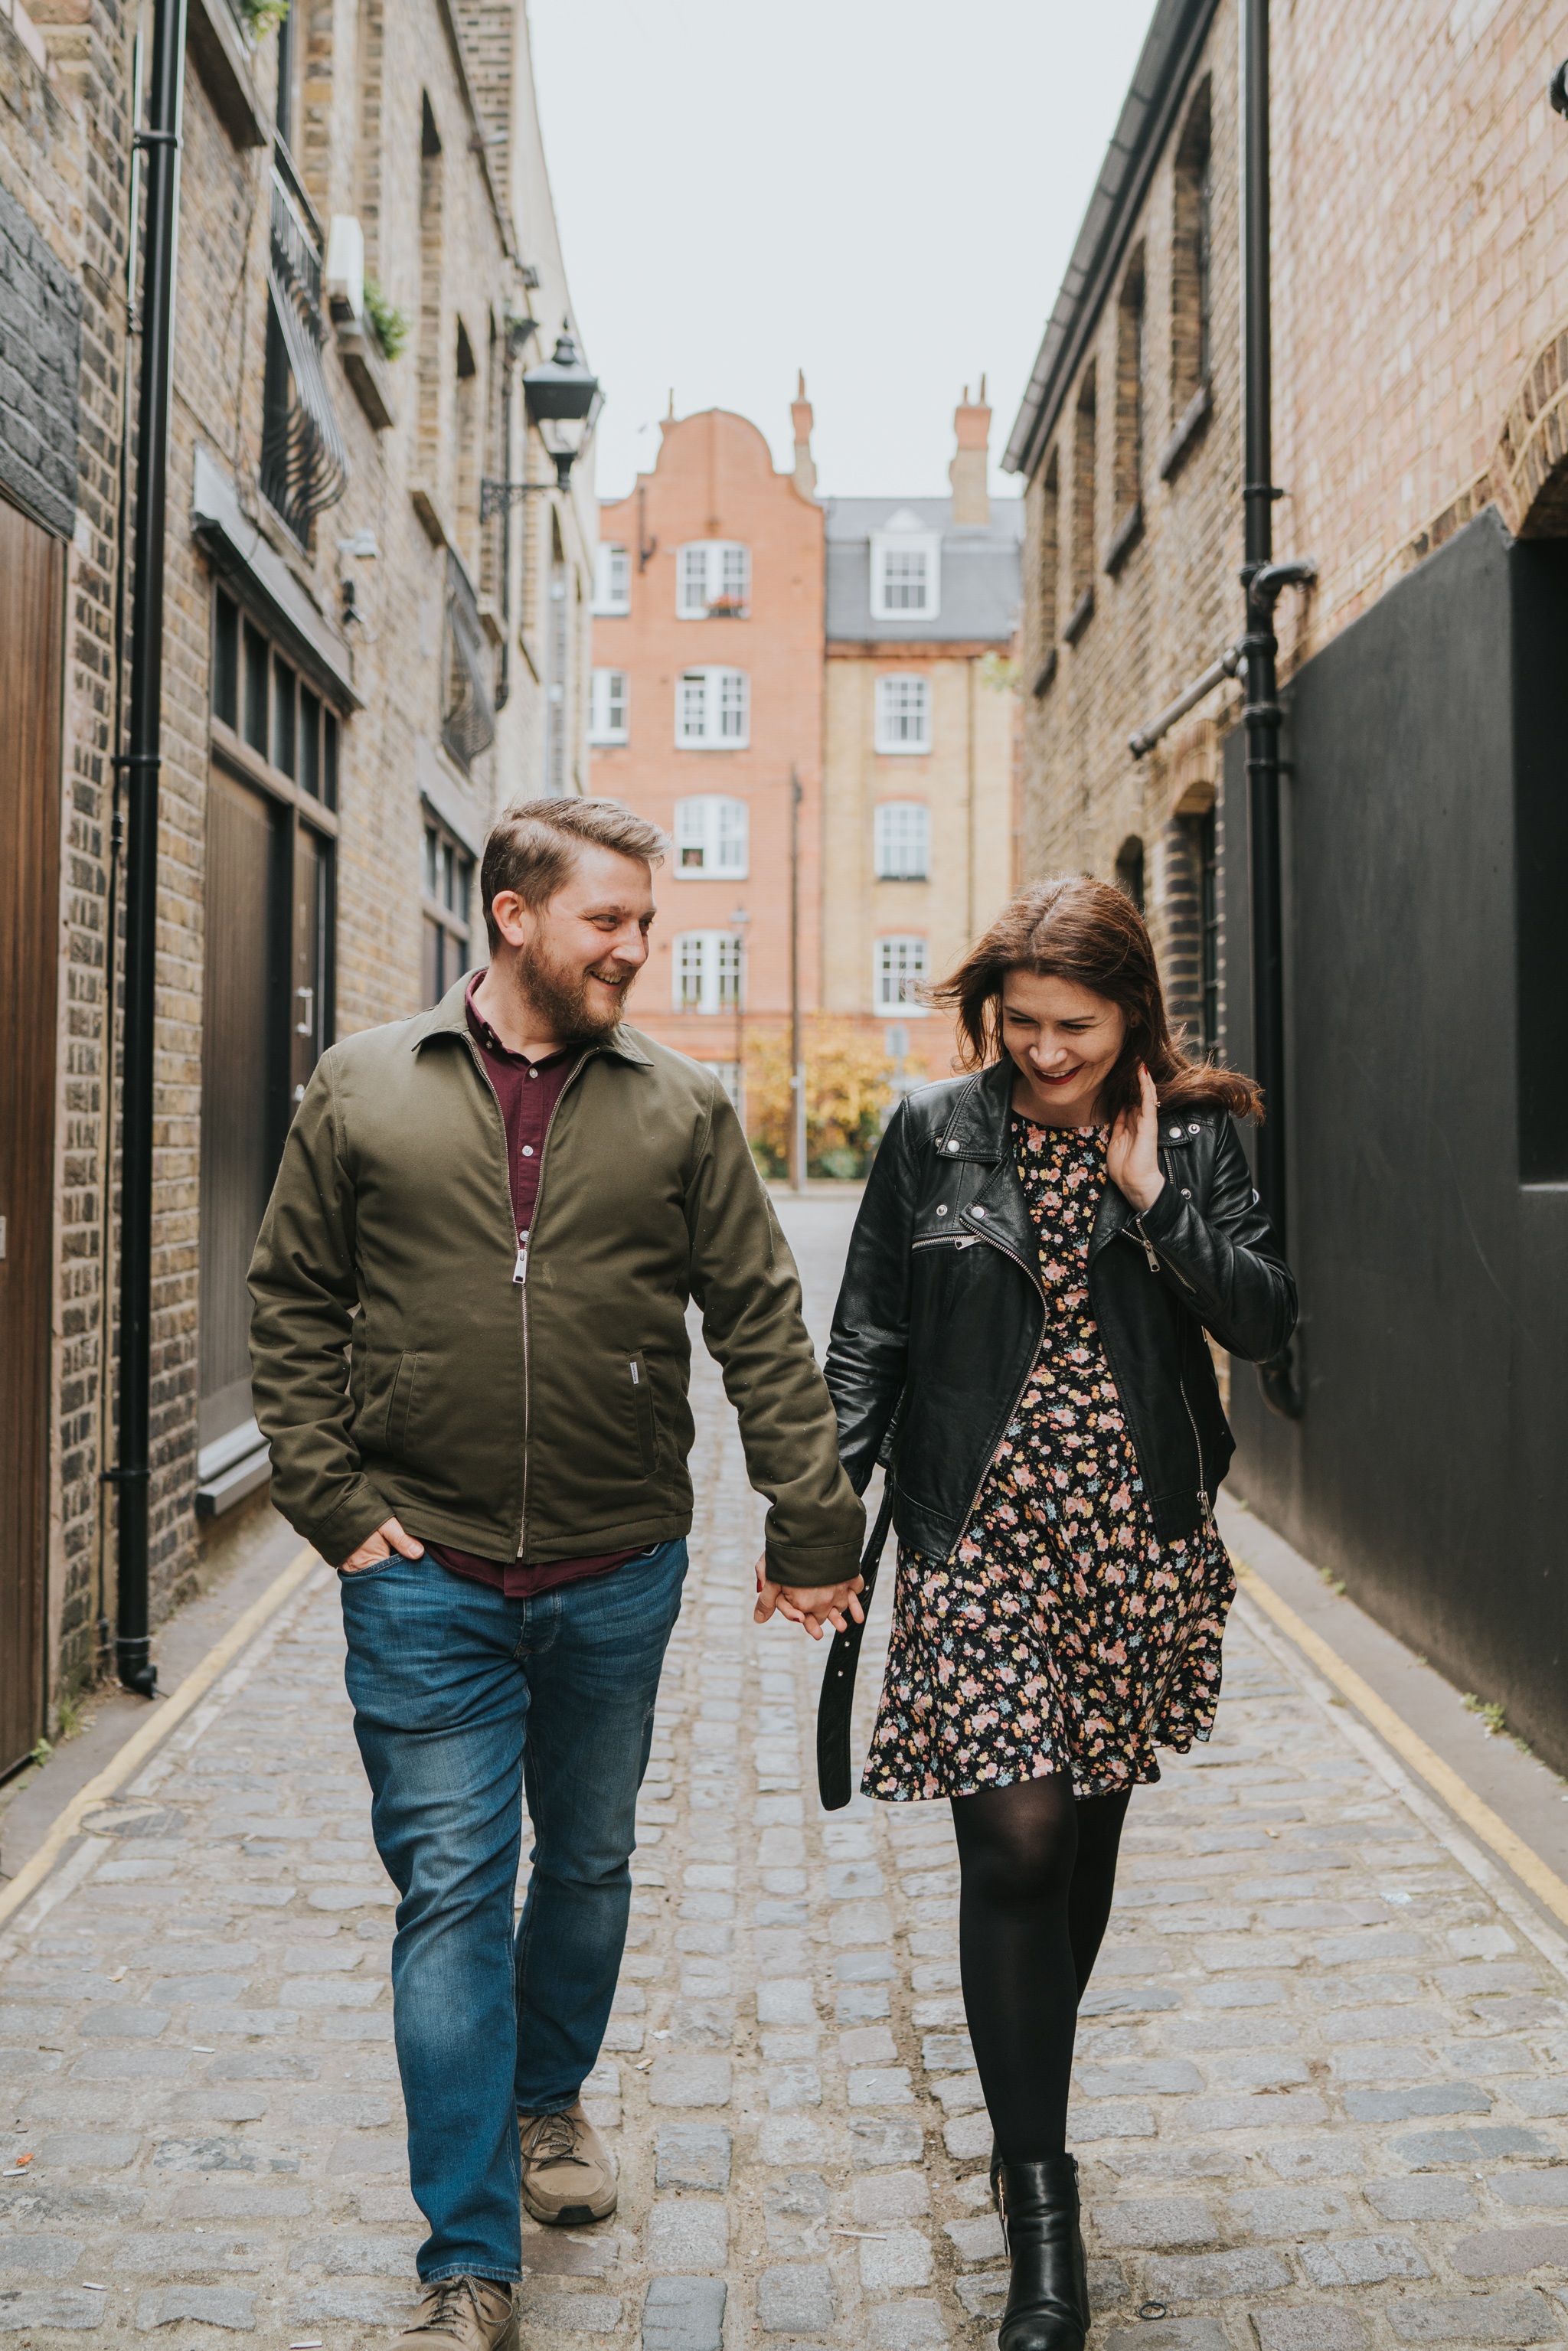 natalie-john-urban-london-engagement-grace-elizabeth-colchester-essex-alternative-wedding-photographer-essex-suffolk-norfolk-devon (53 of 66).jpg